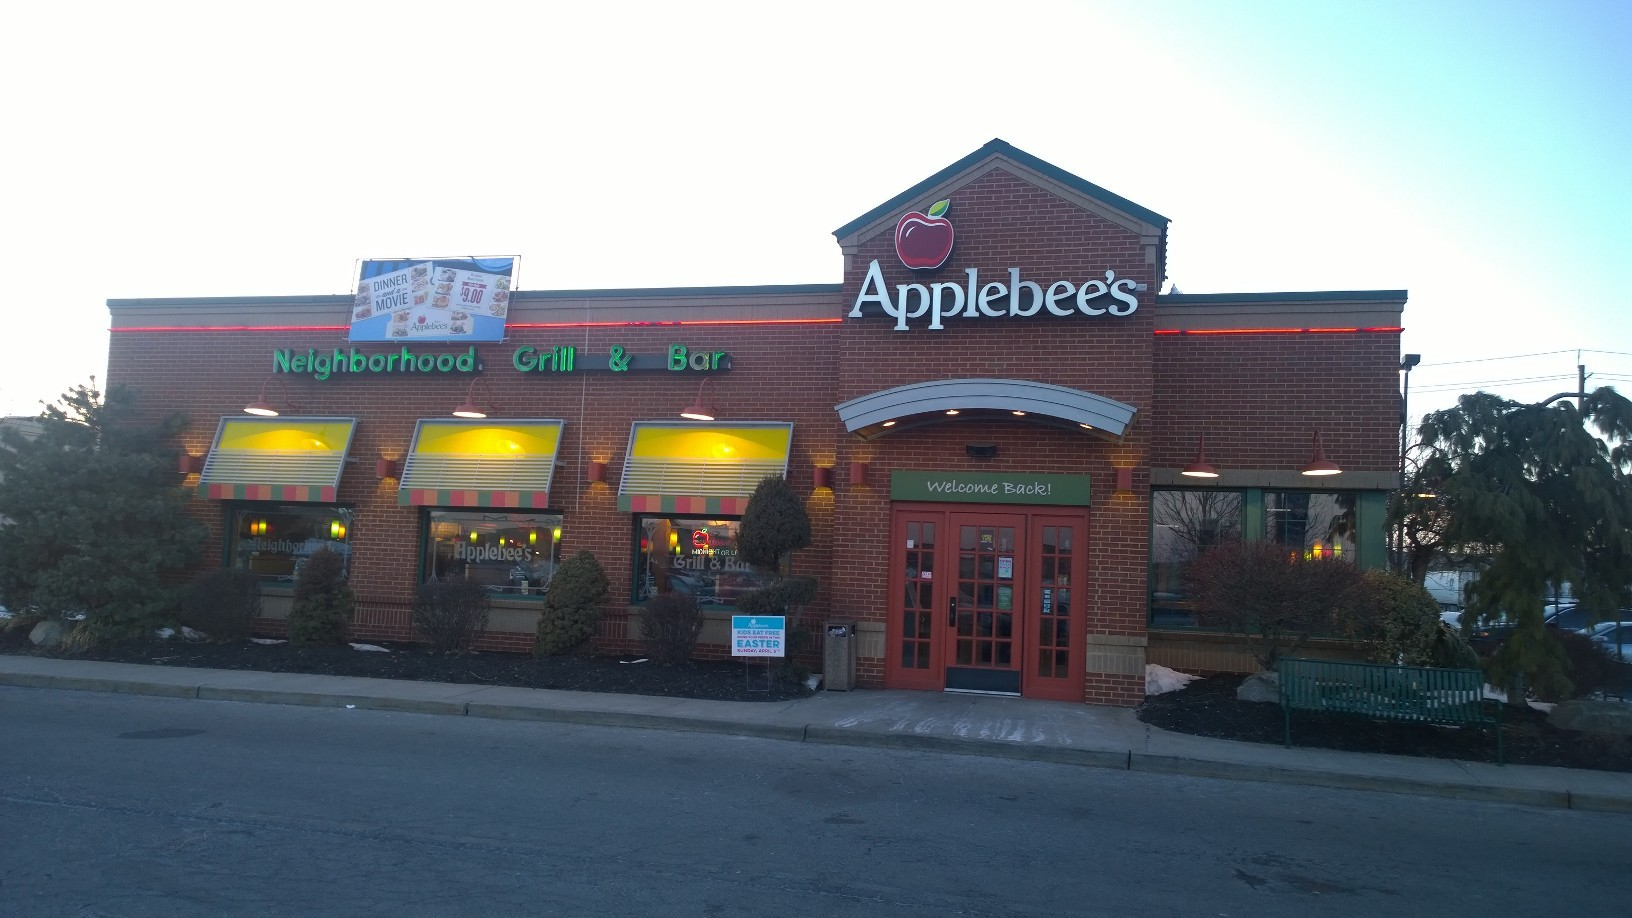 The Rose Group Applebees restaurant in NJ PA DE and MD Corporate headquarters located at 29 Friends Lane Newtown PA 18940